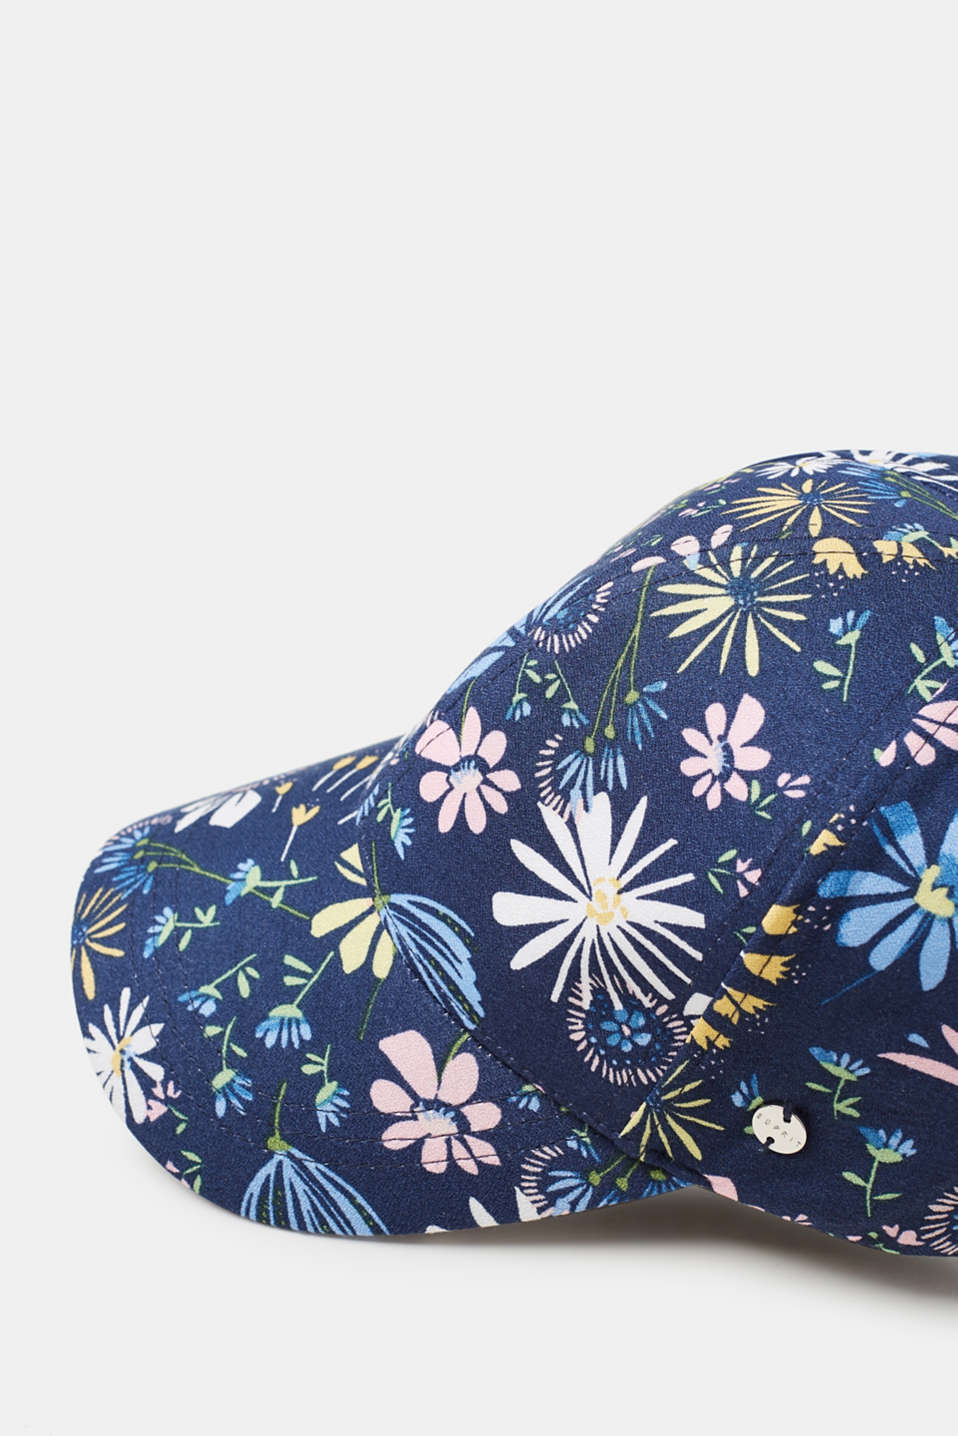 Light baseball cap with all-over floral print